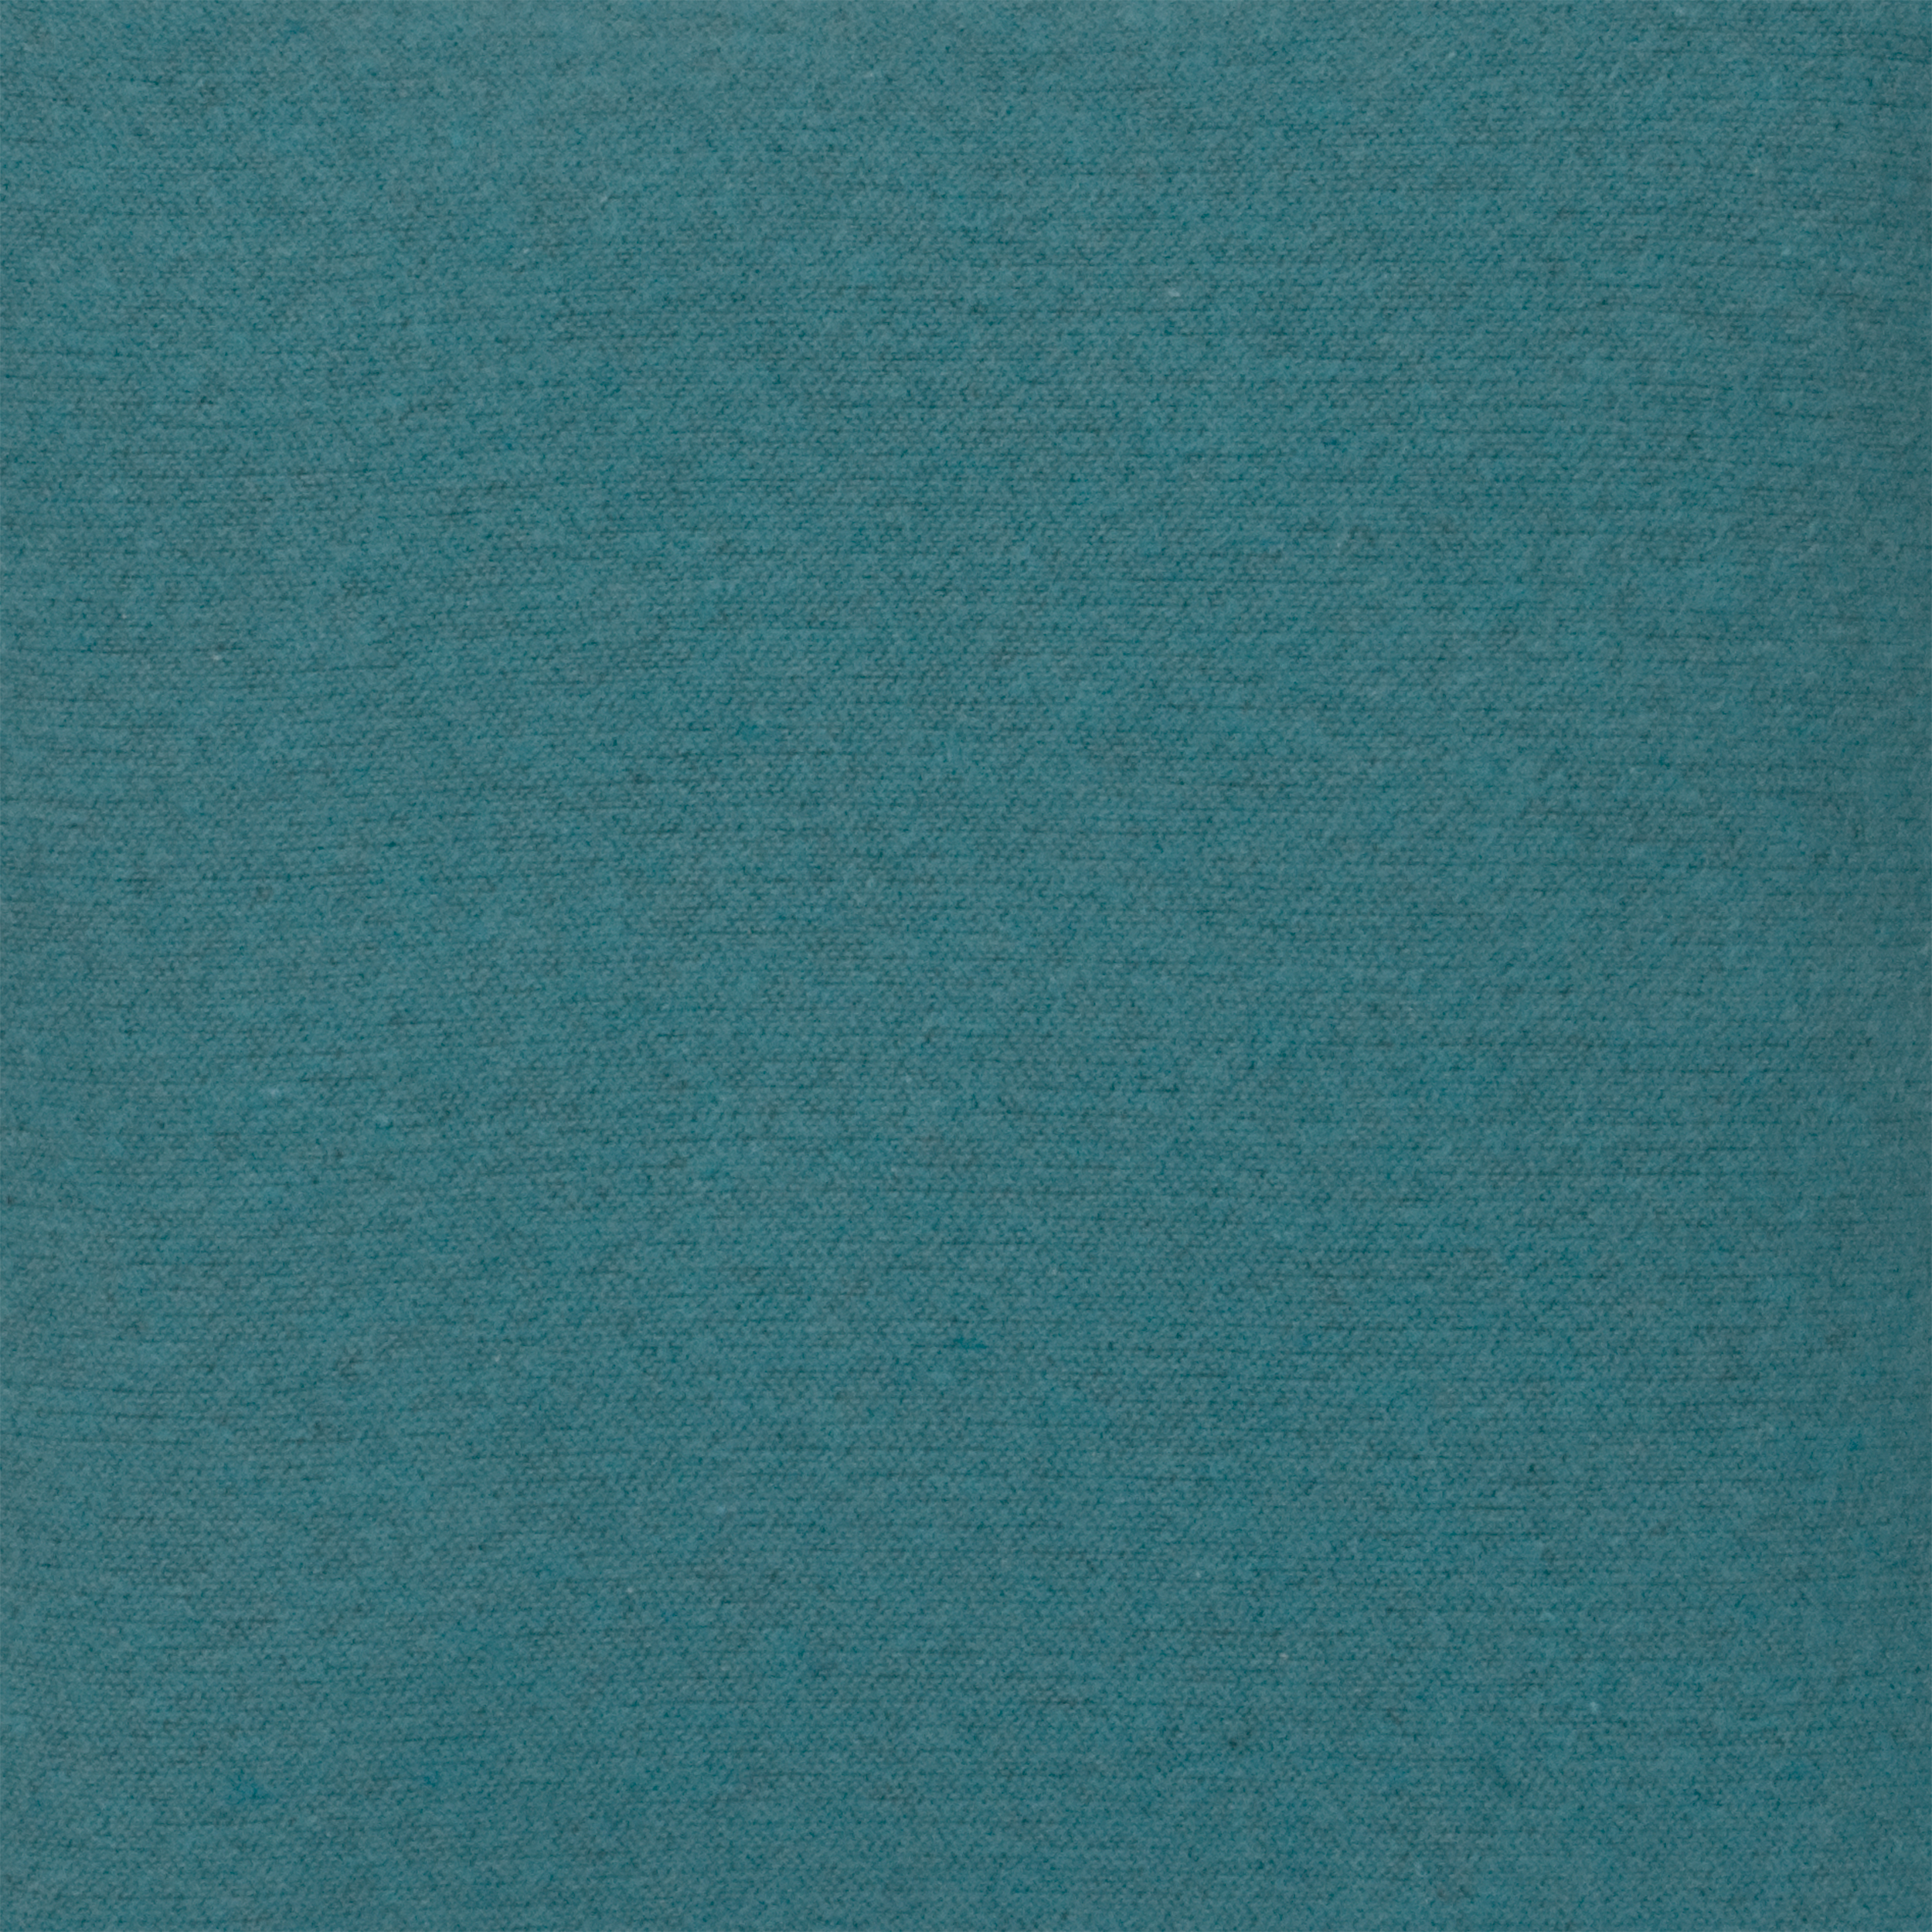 Solid Turquoise (Wool-Blend)